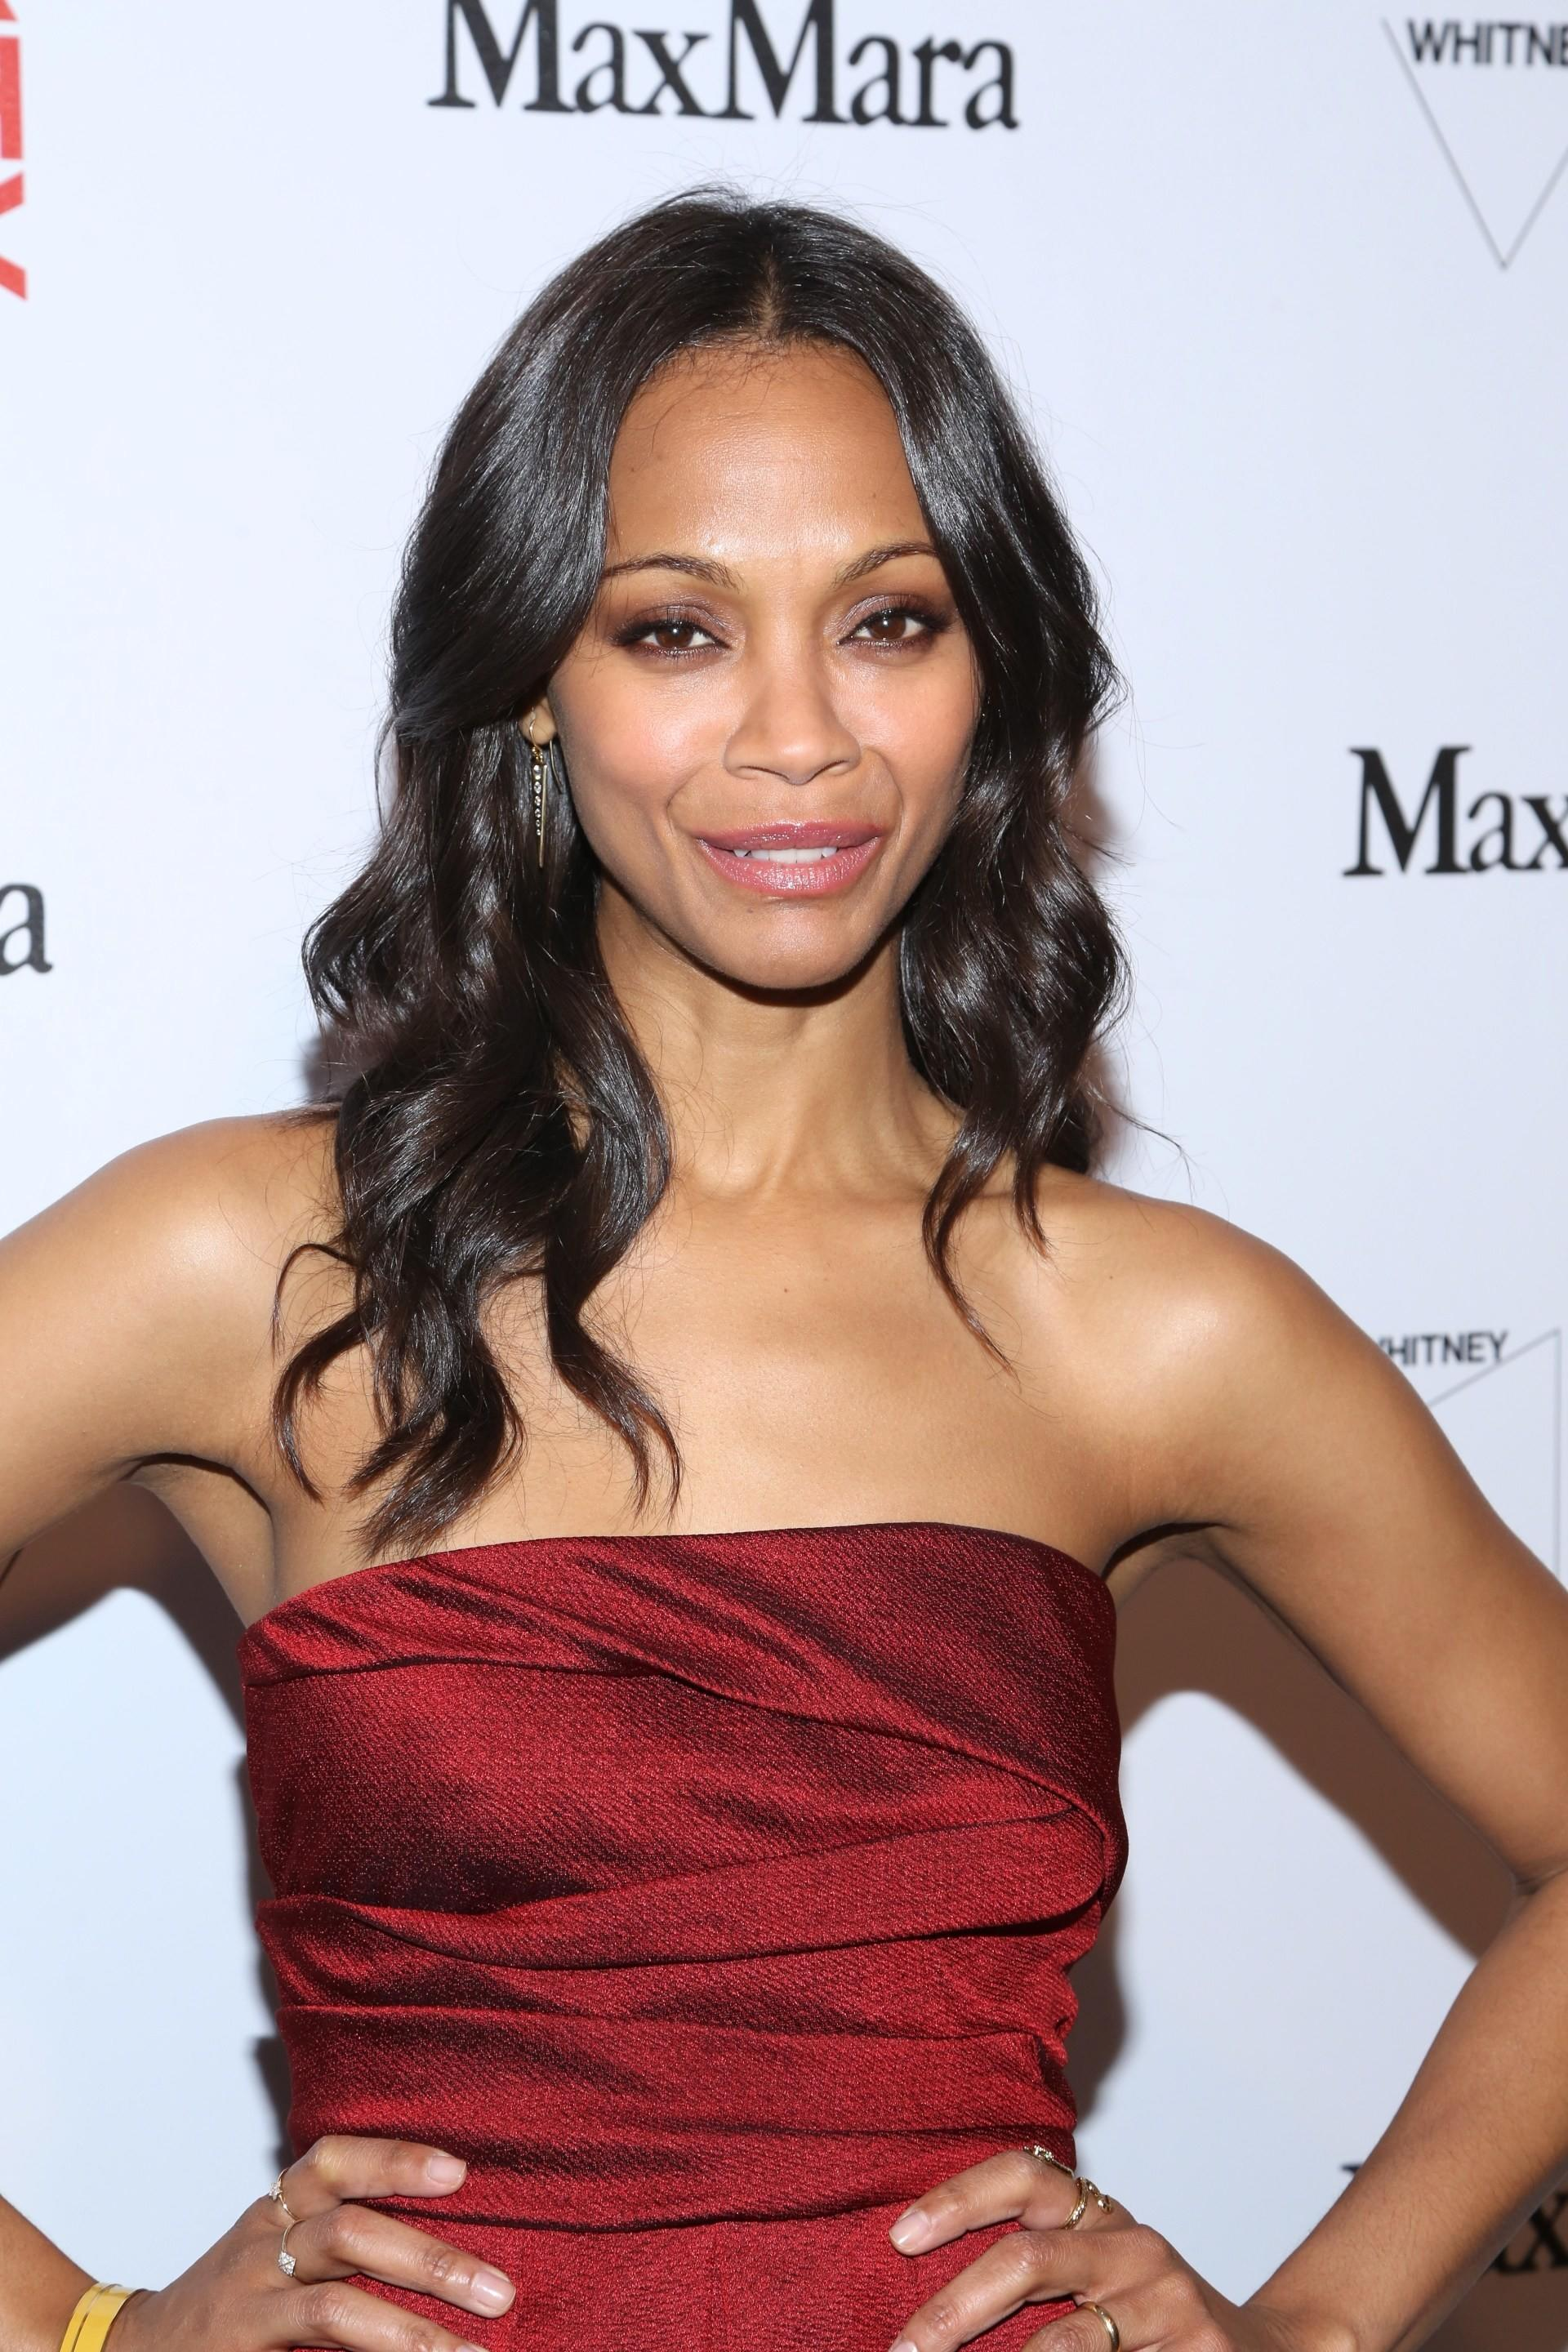 Zoe Saldana's Most Memorable Looks | Fandango